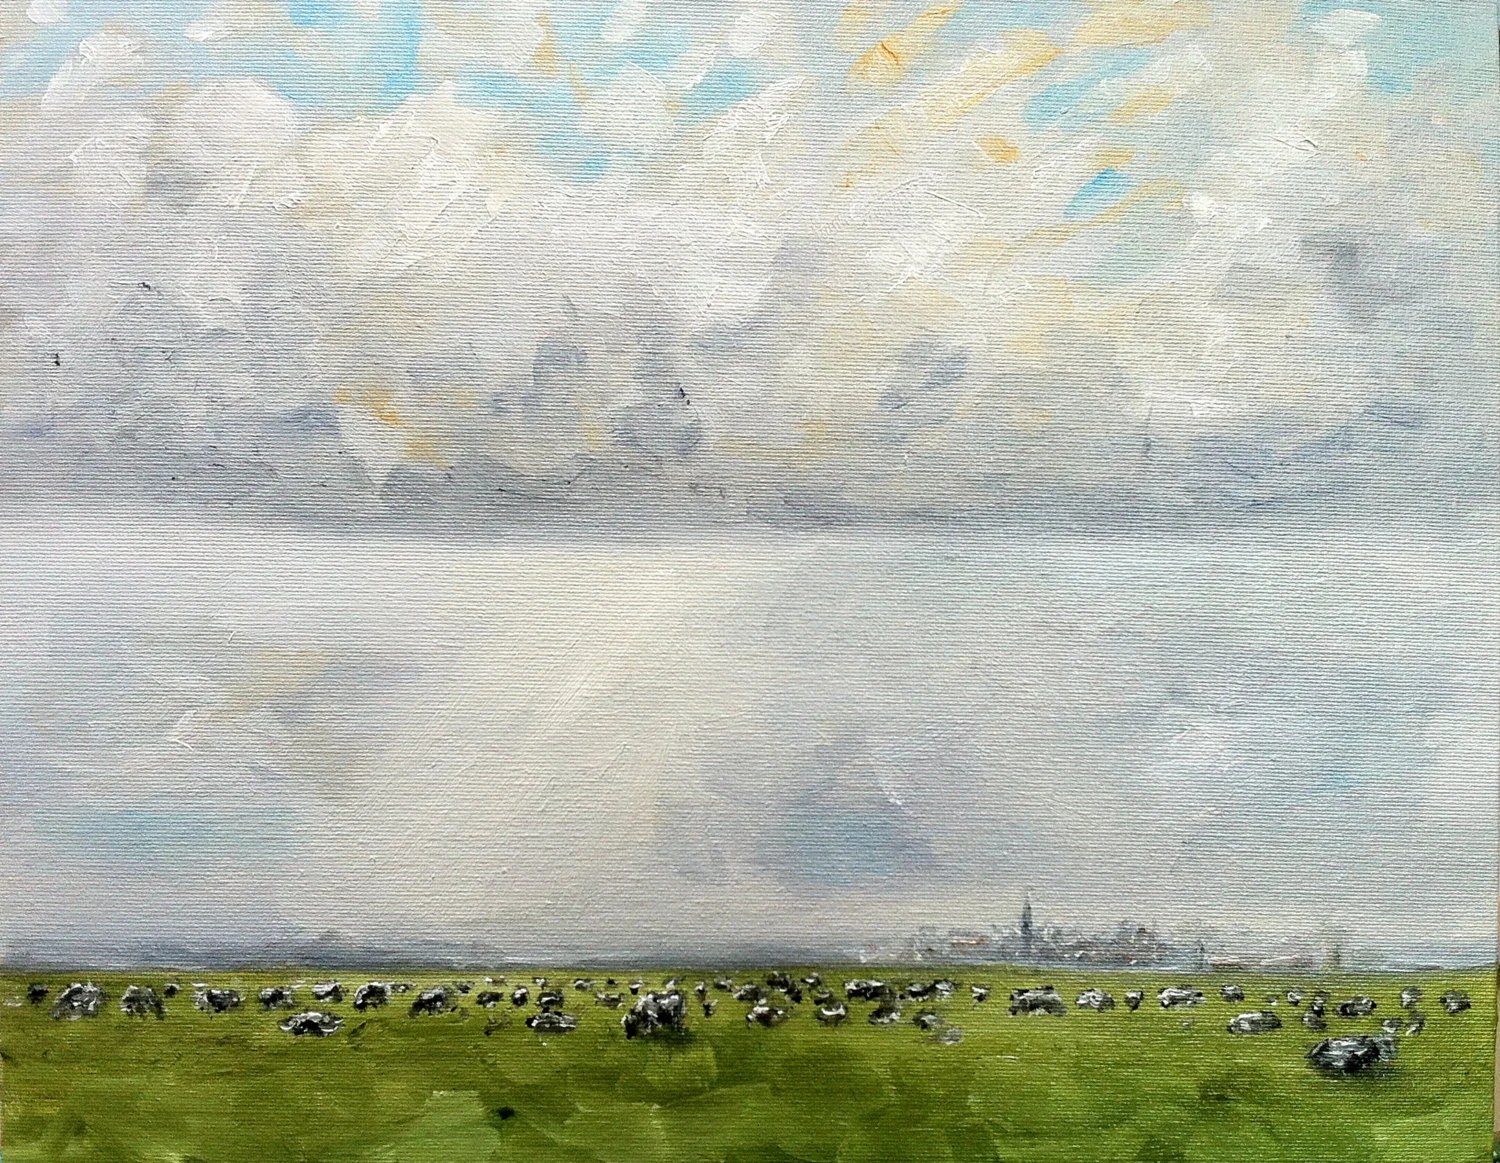 Dutch Landscape with Cows and Sky oil painting 9.45 x 11.81 inches - NancyvandenBoom